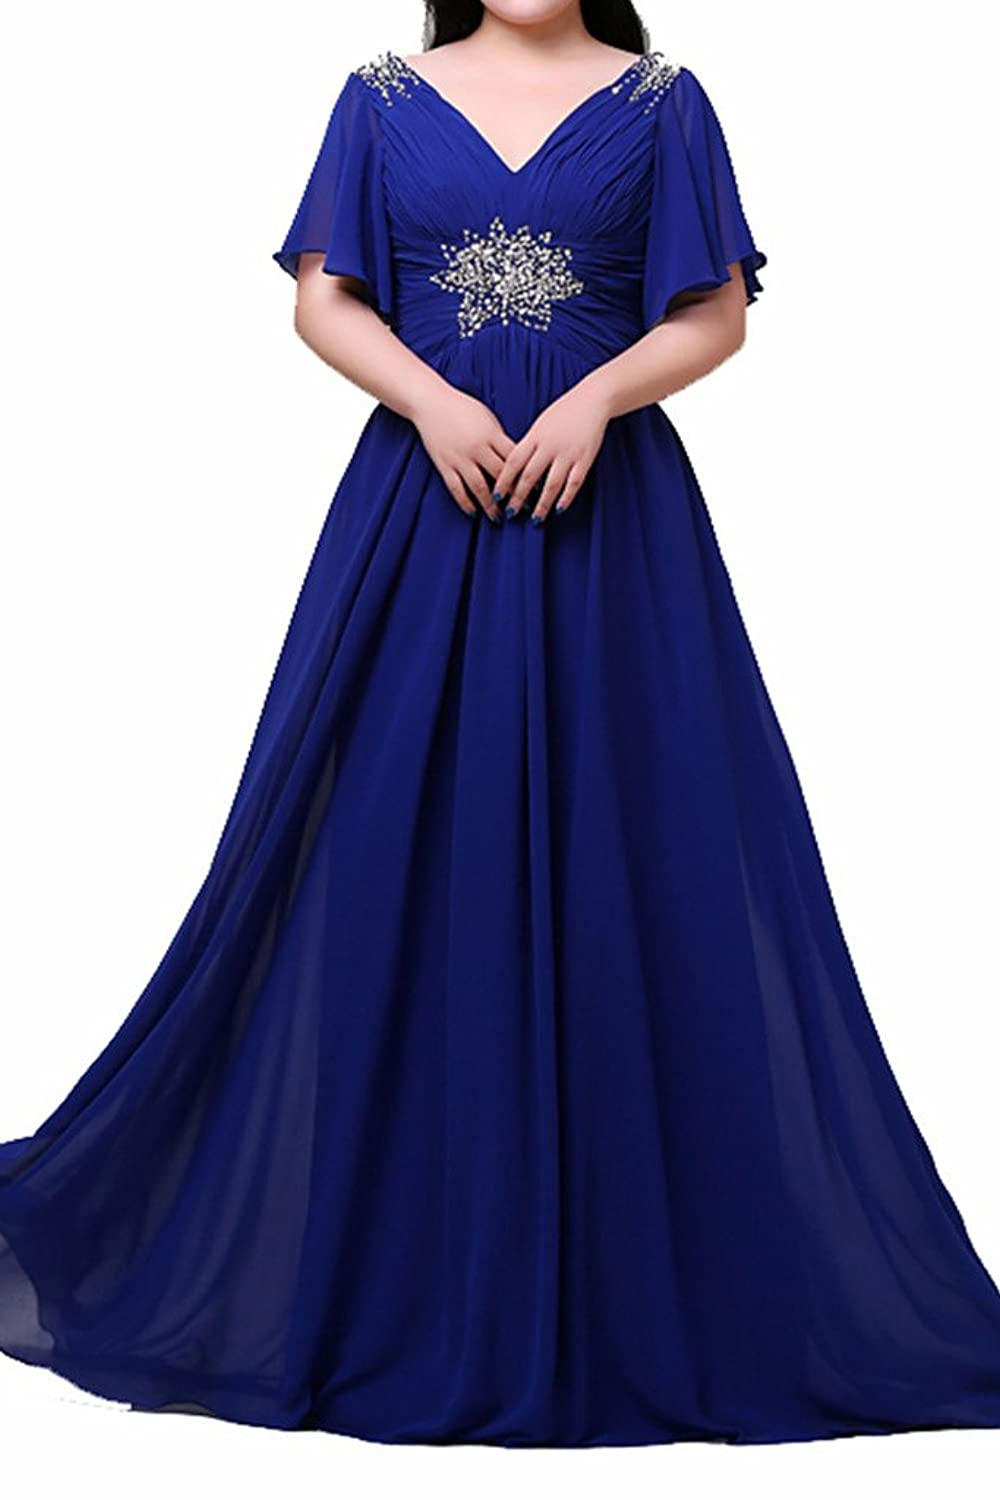 Charm Bridal Royal Blue Bride's Mother Plus Size Prom Dresses 2016 with Sleeve